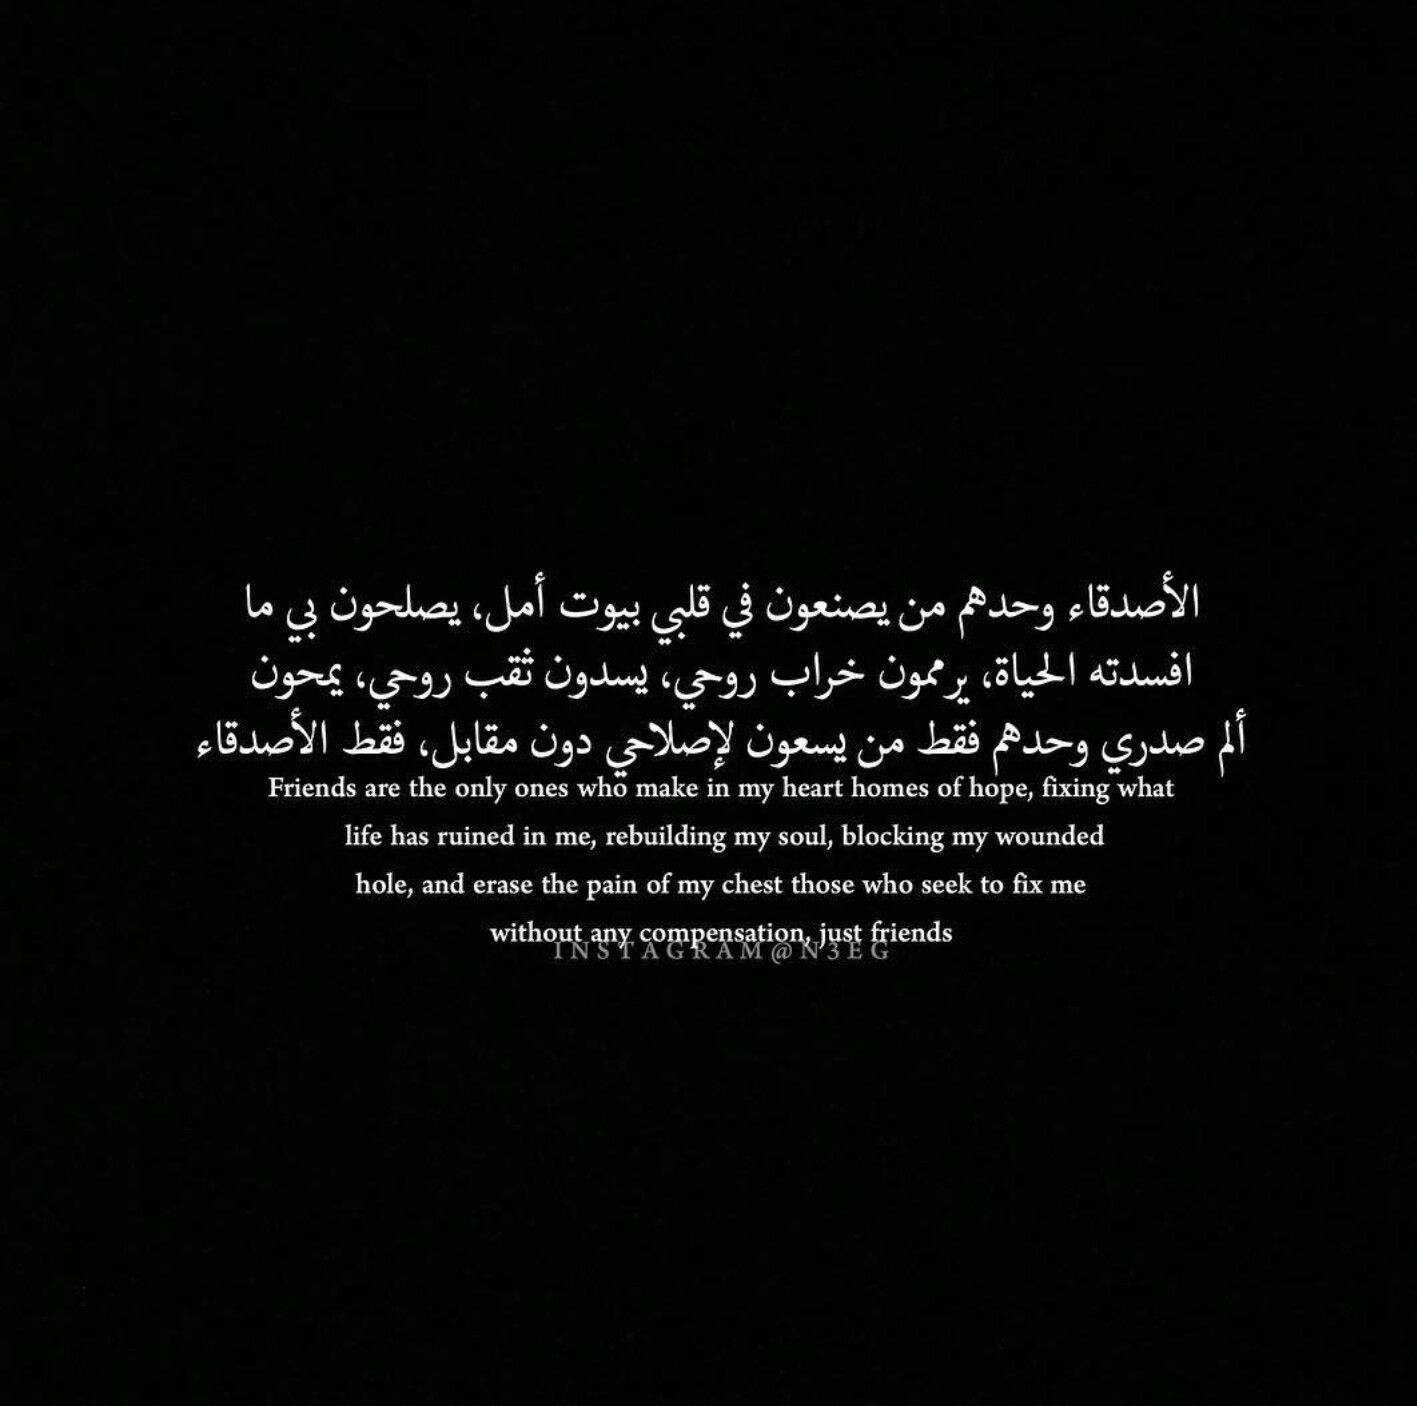 Pin By Wardah Choudhary On Quotes Wisdom Quotes Life Spirit Quotes Arabic English Quotes